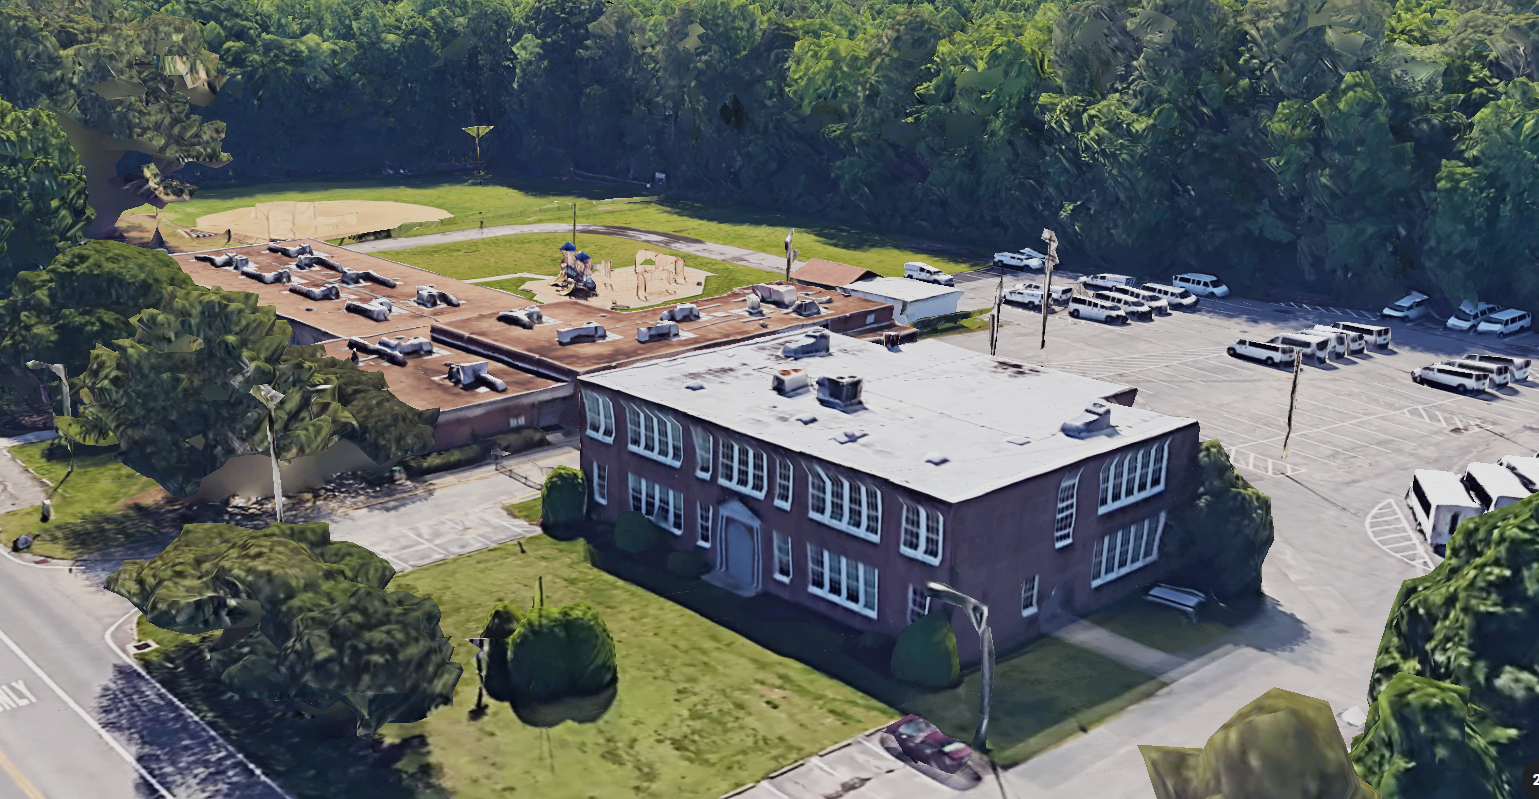 An angled overhead view of the former Court House Elementary School complex.